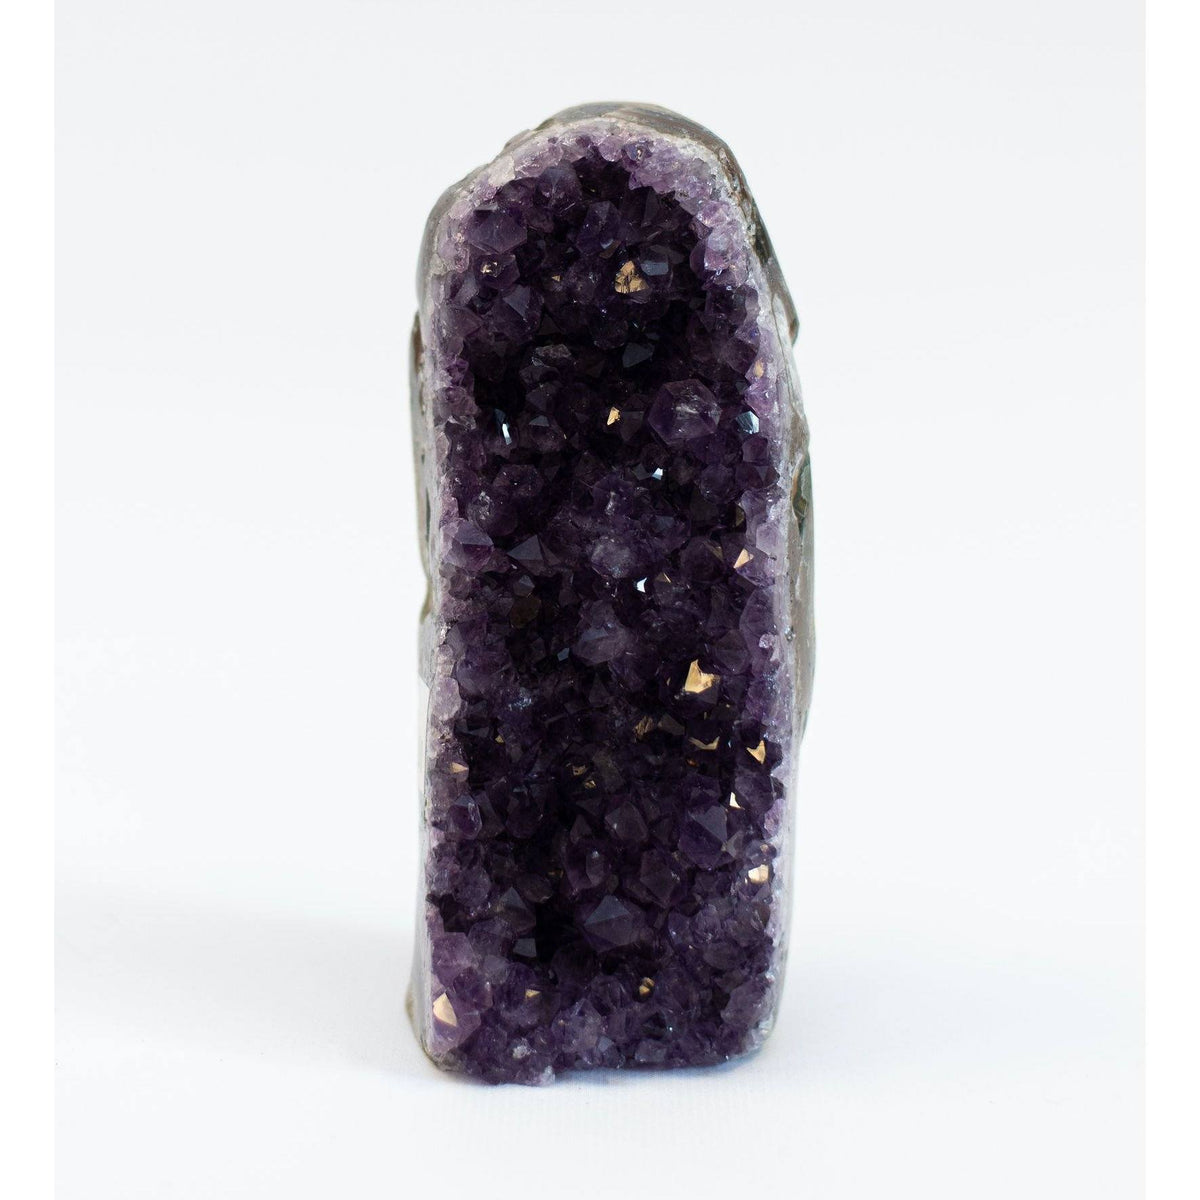 Amethyst Geode stone Virgo + Garnet | Beautifully Balanced Living